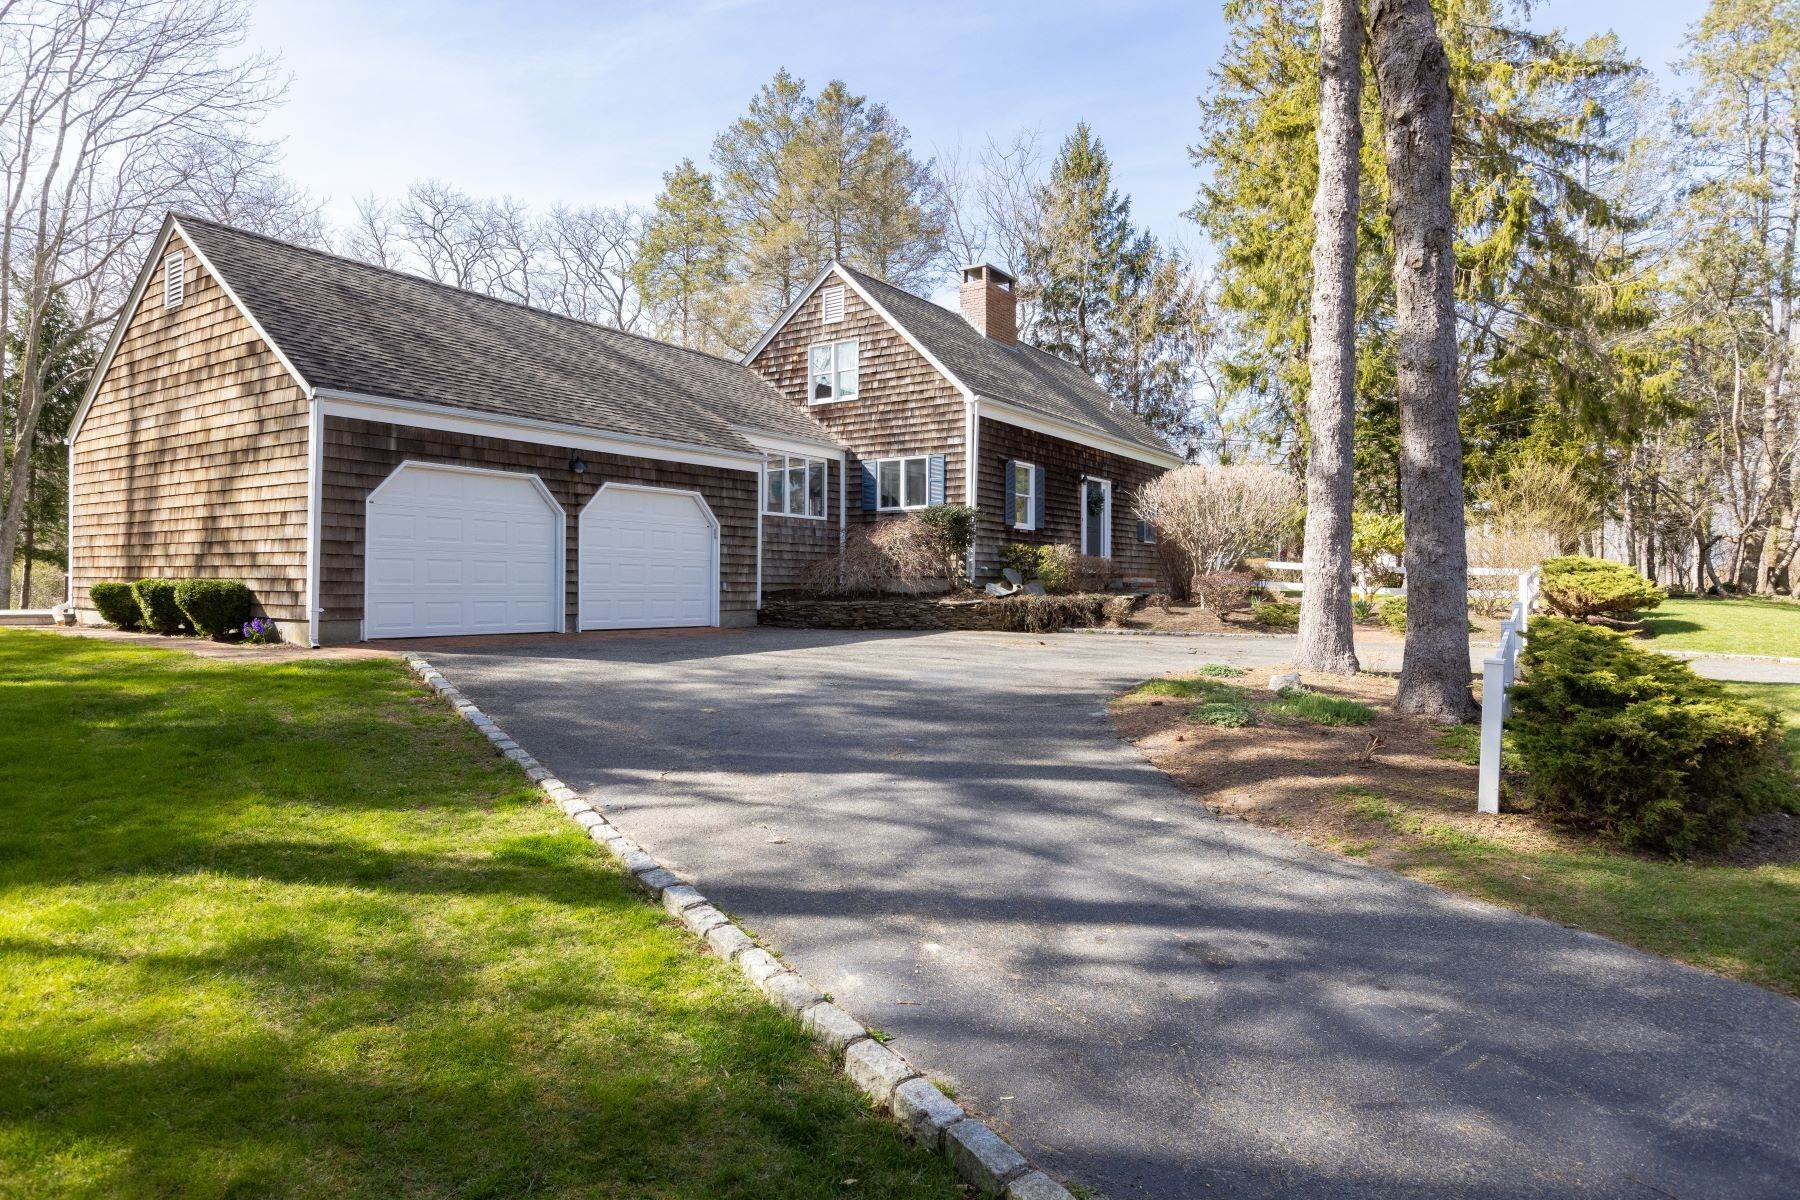 Single Family Homes for Active at 380 Tuthill Road, Southold, Ny, 11971 380 Tuthill Road Southold, New York 11971 United States